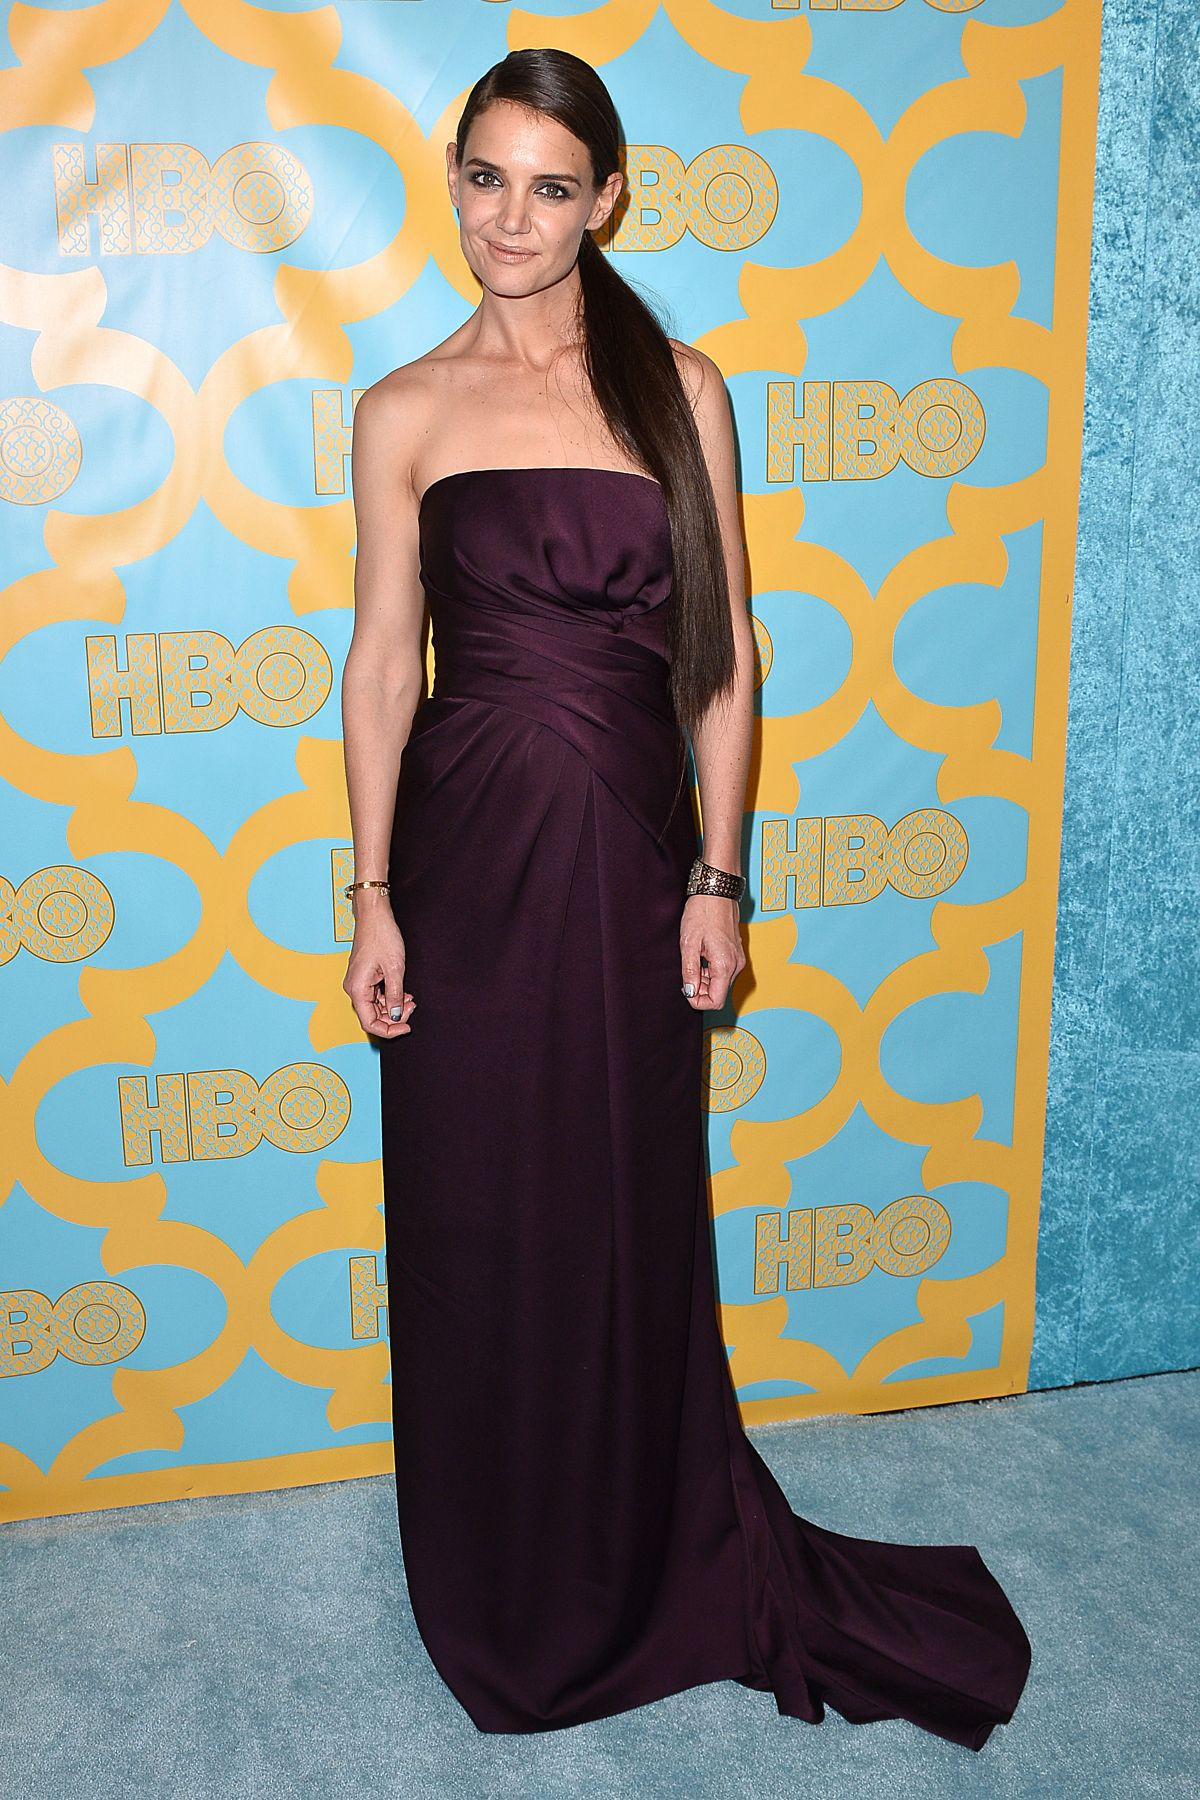 KATIE HOLMES at HBO Golden Globes Party in Los Angeles